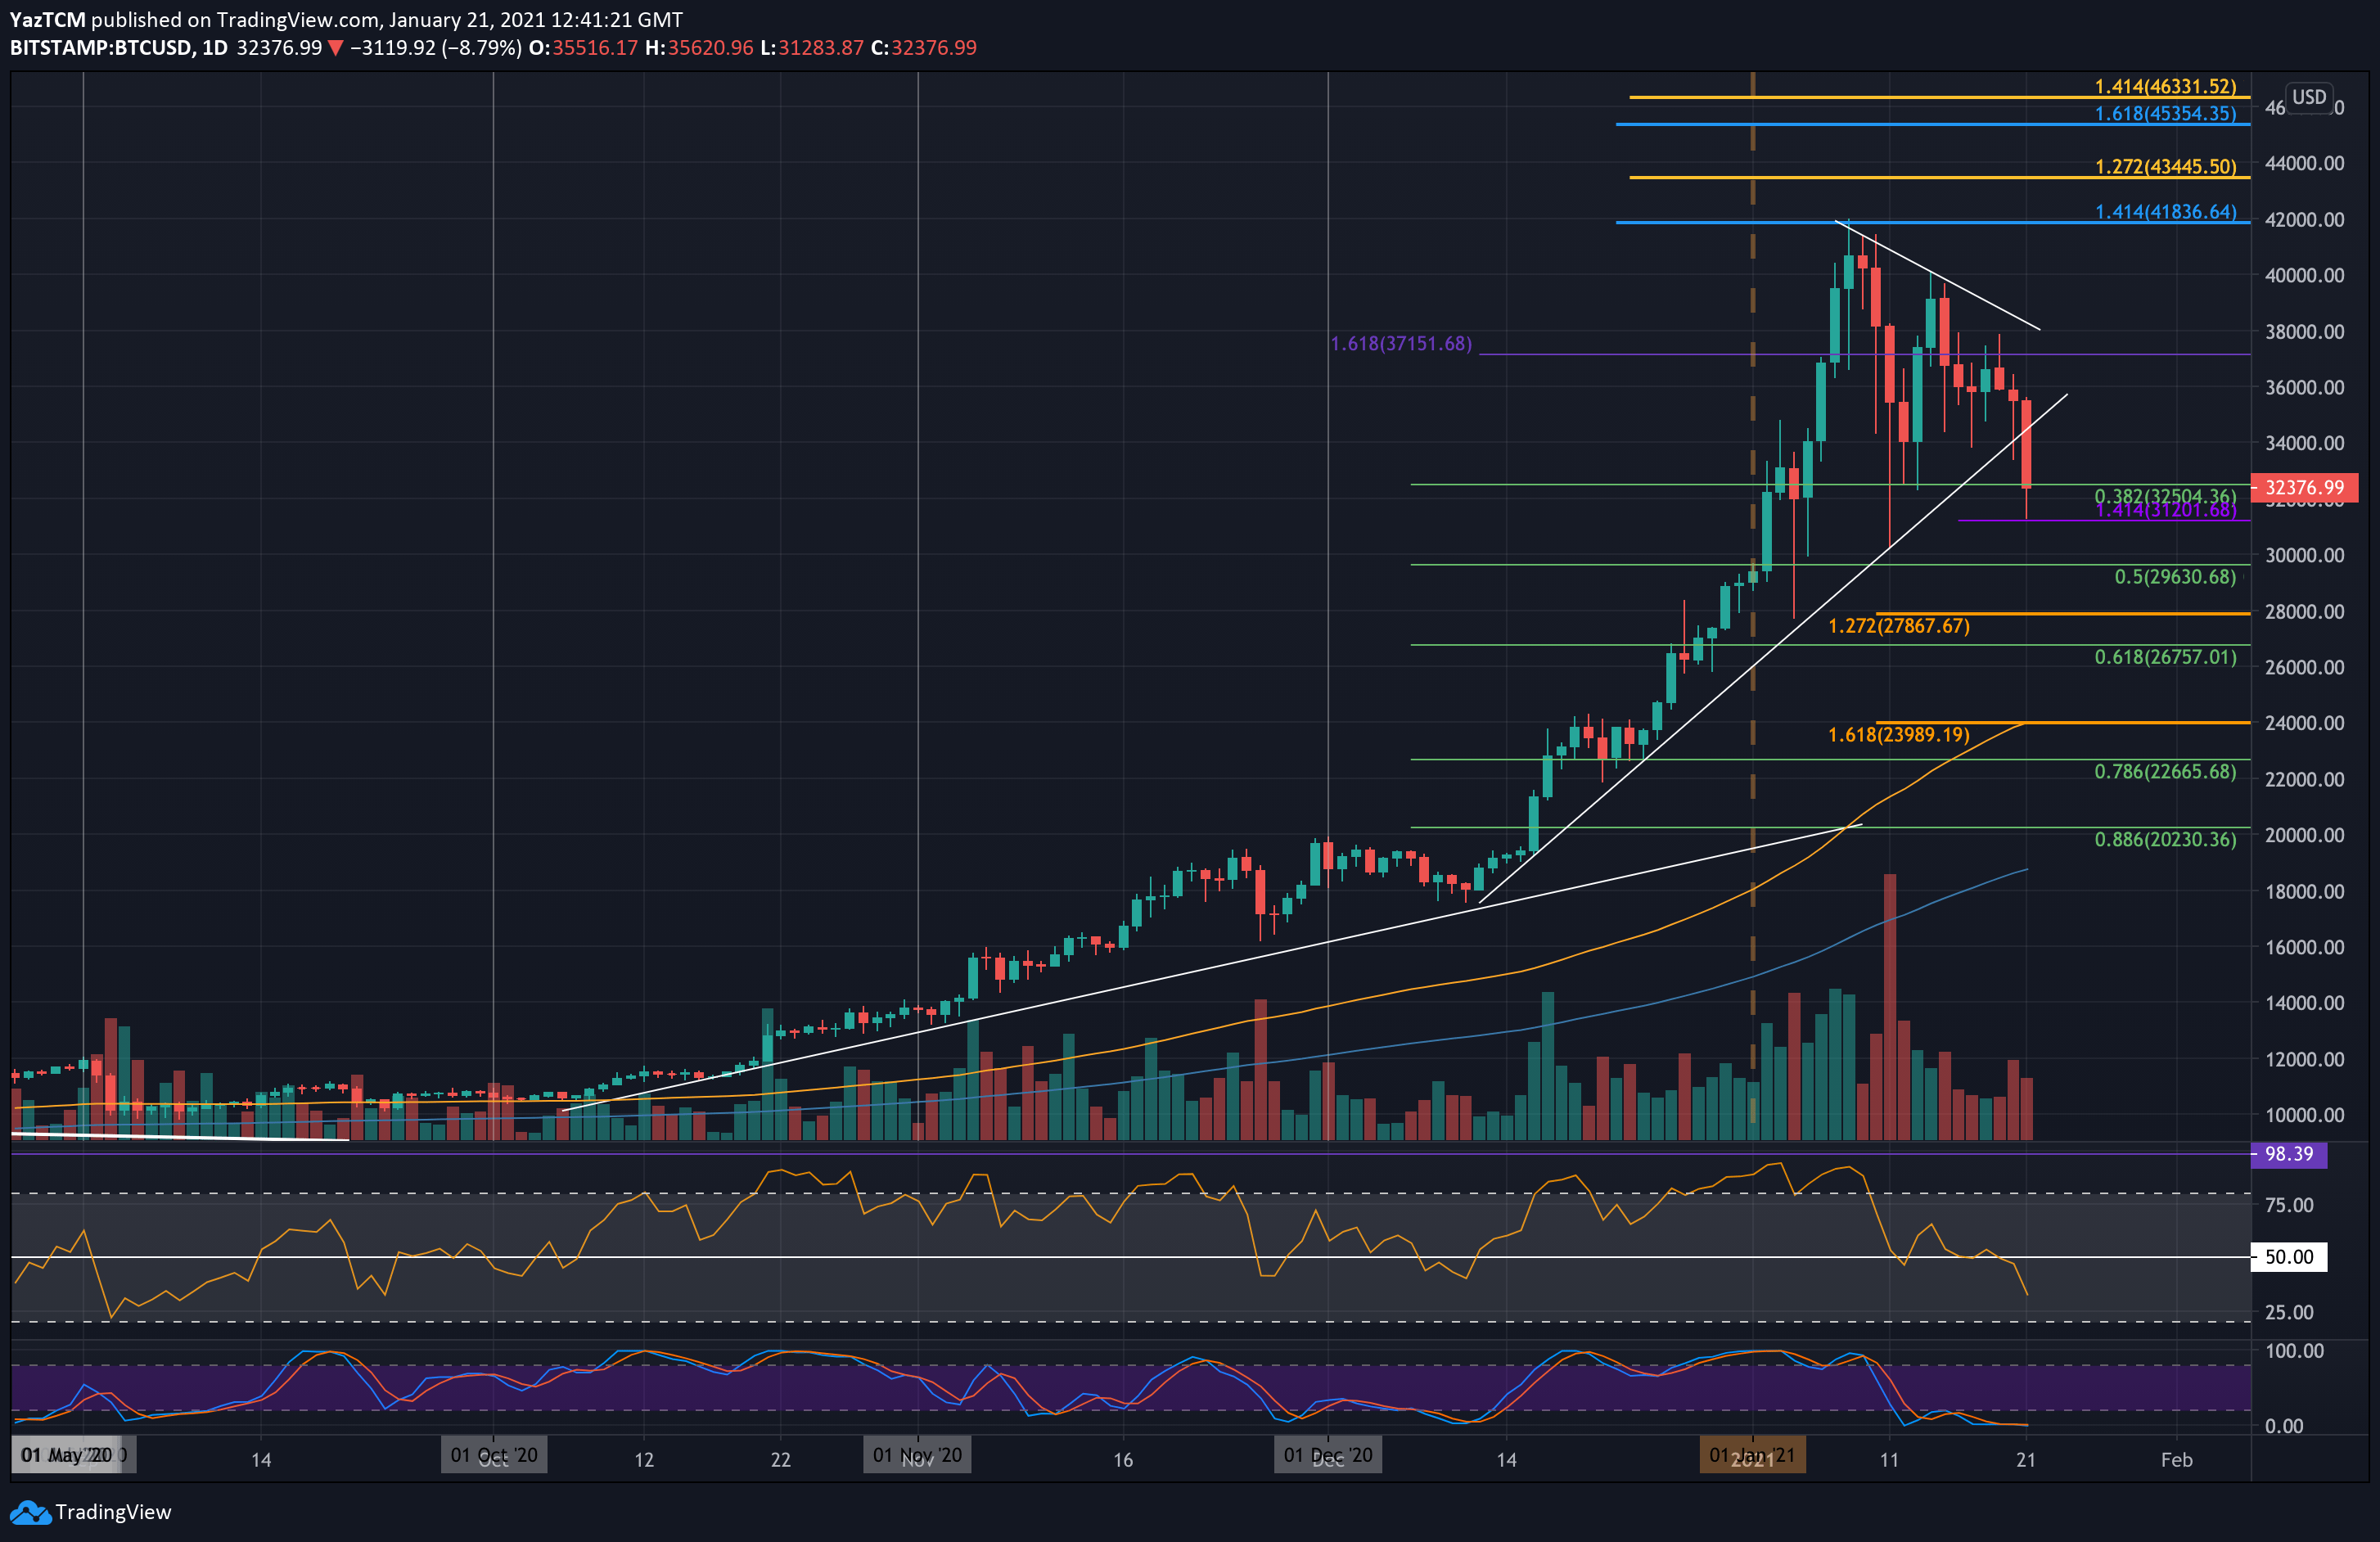 Bitcoin Crashes $4000 Following Triangle Pattern Breakdown: Where Is The Bottom? (BTC Price Analysis)